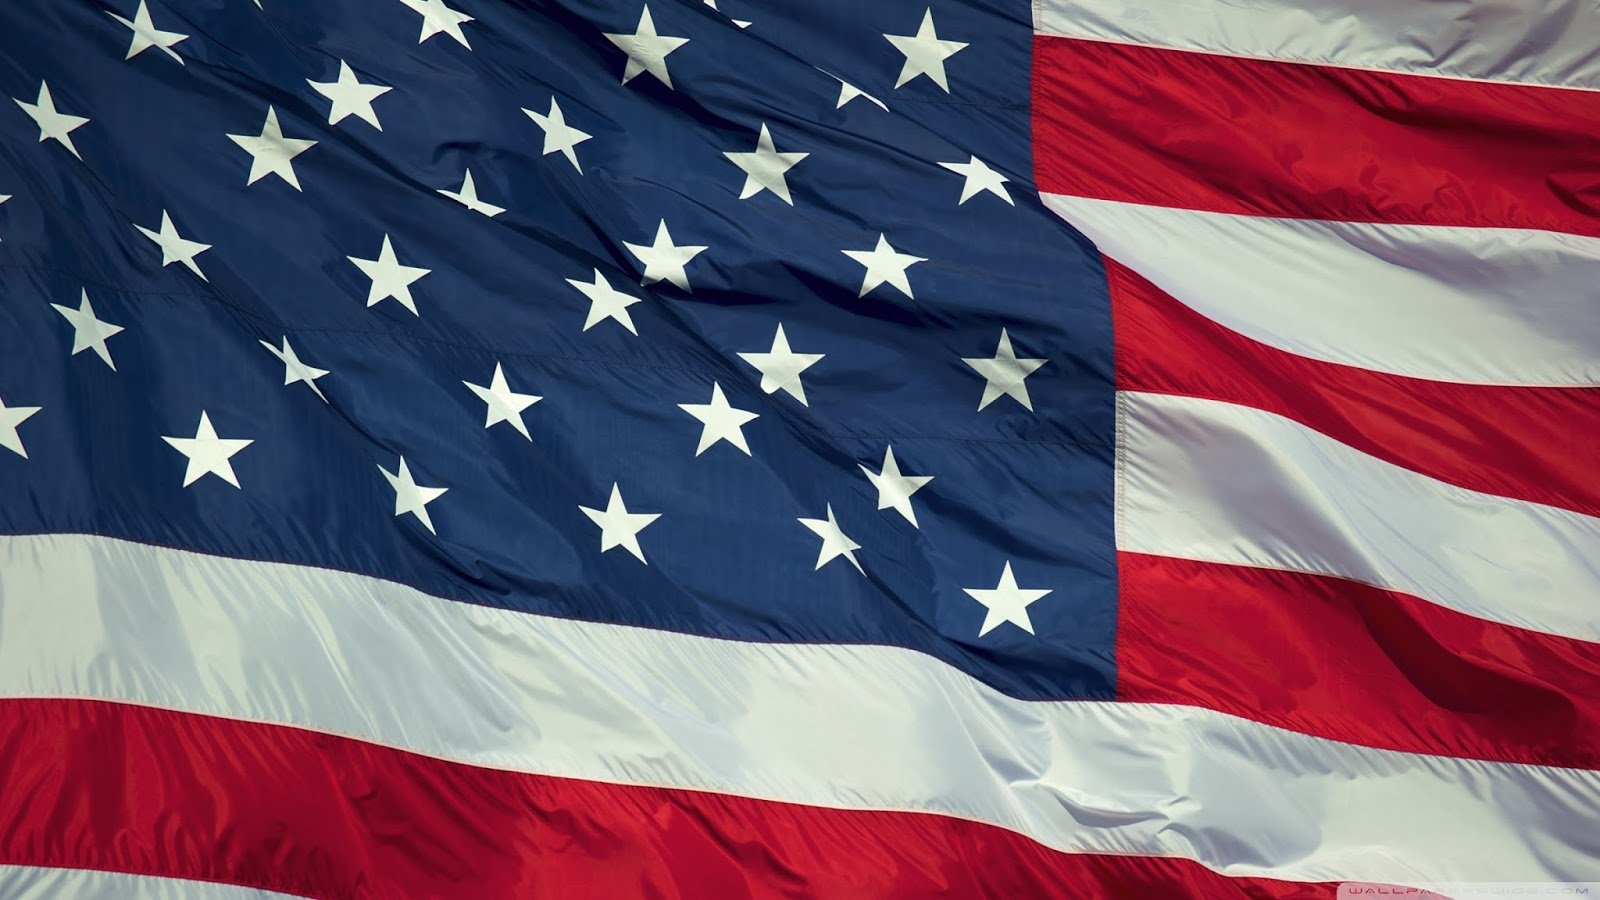 American Flag   HD Wallpapers 1600x900